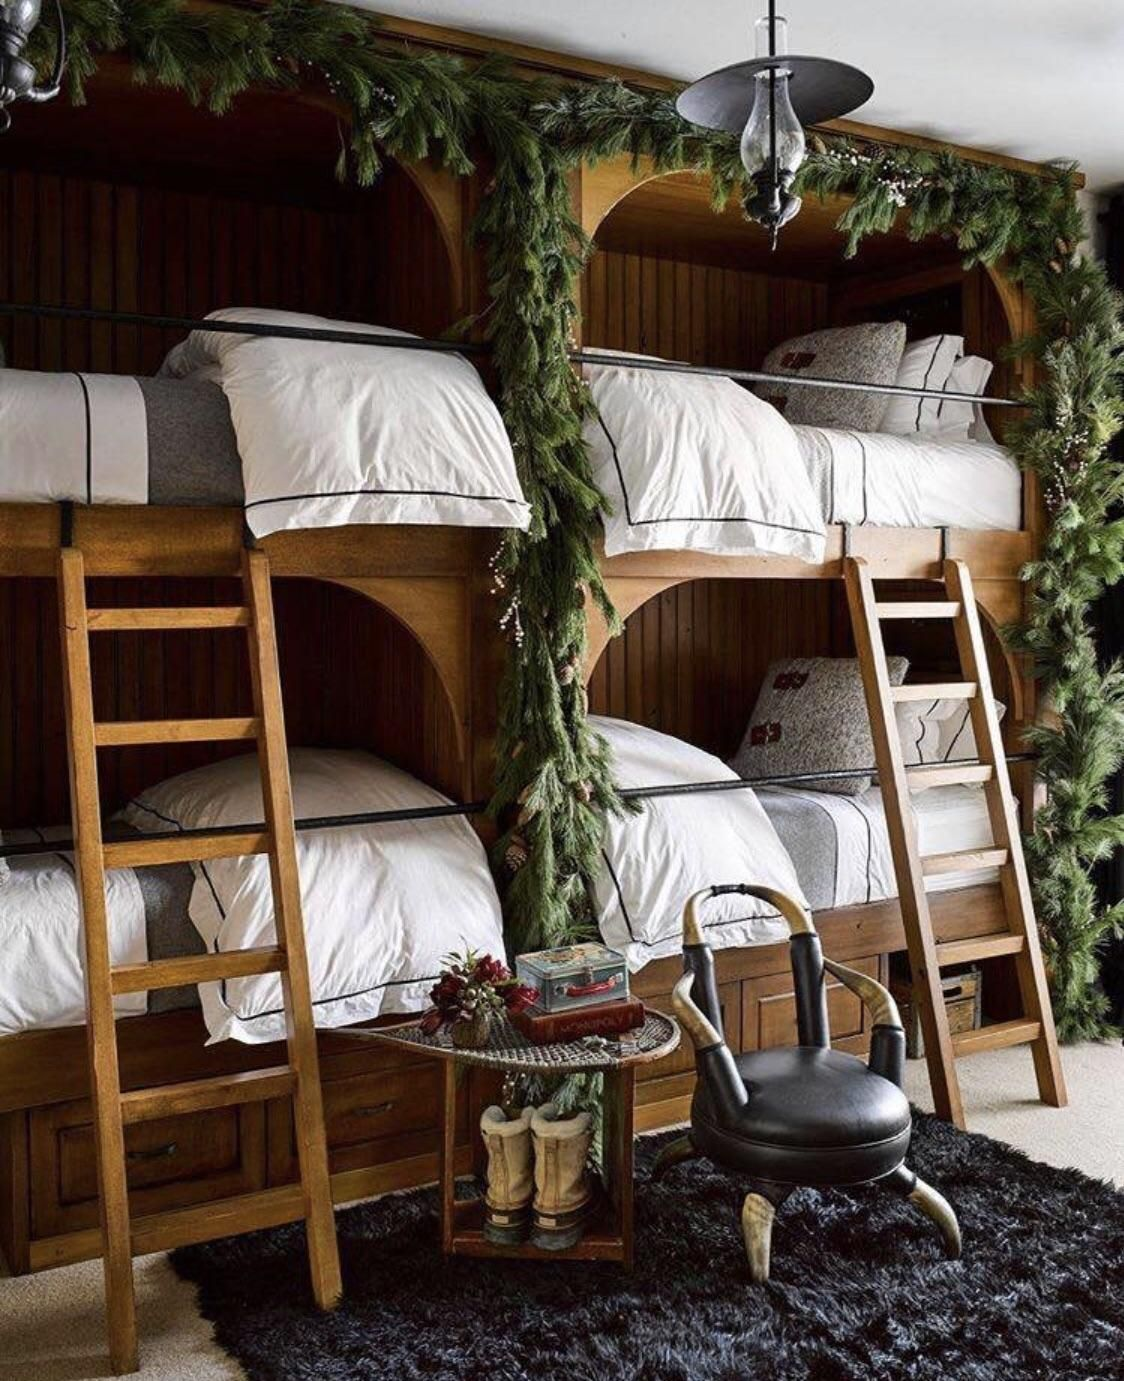 Pin by Alesha Matthes on Bunk beds in 2020 Bunk beds